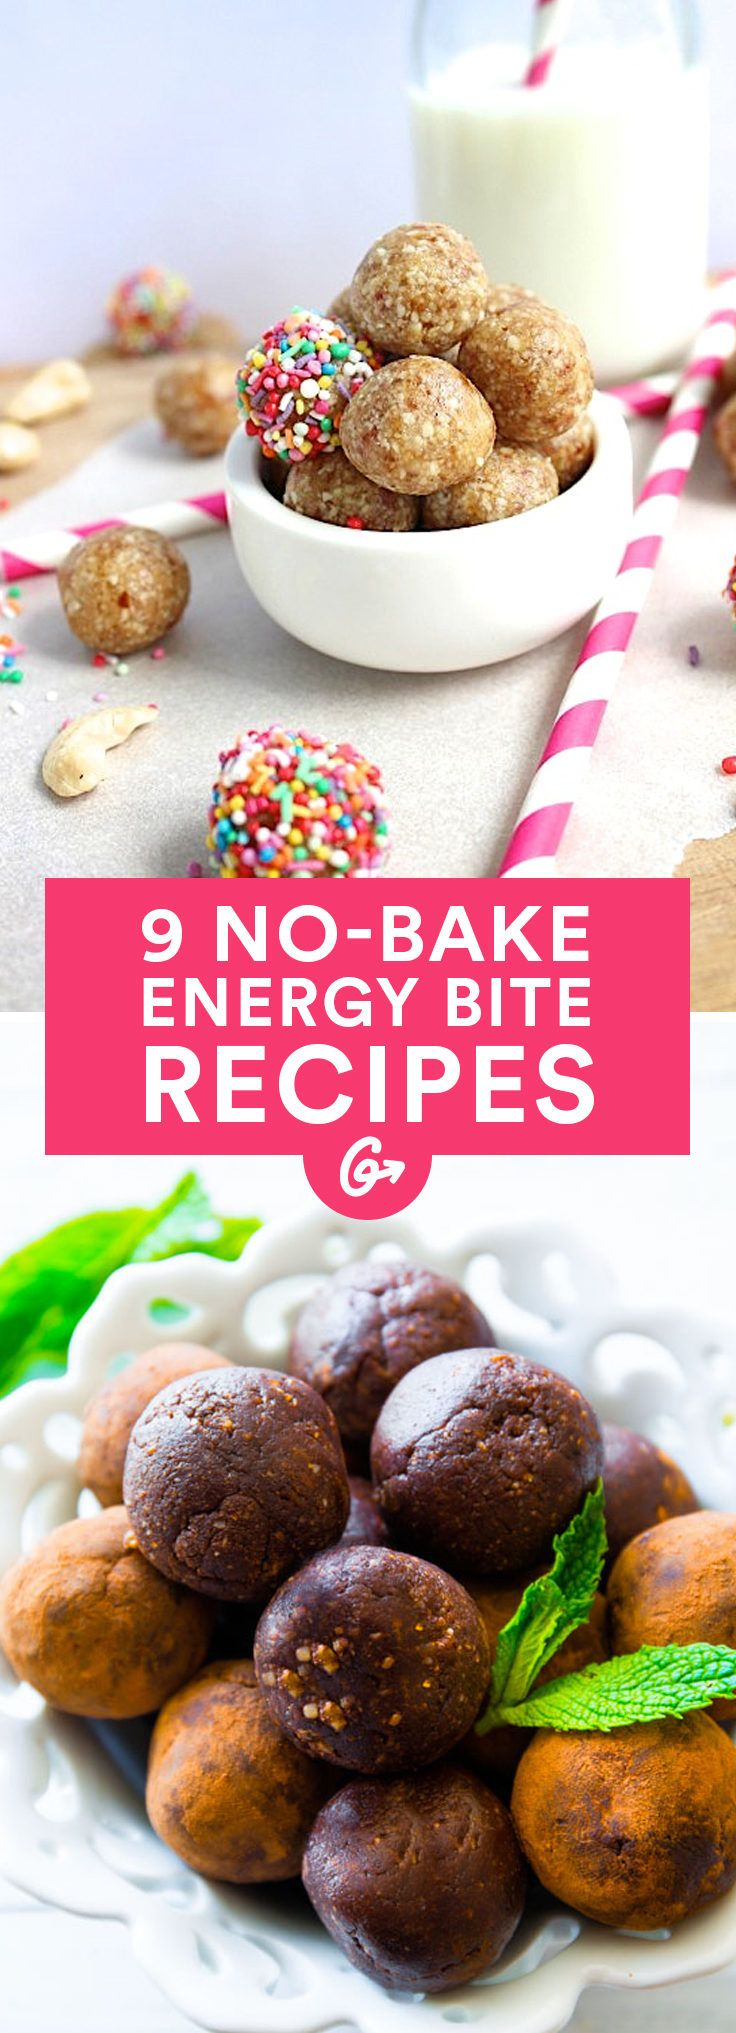 Filled with chocolate, covered in rainbow sprinkles, and loaded with all kinds of  healthy ingredients, these filling bites are some of the tastiest and easiest snacks to make and eat on the go. #healthy #energy http://greatist.com/eat/healthy-energy-bites-recipes